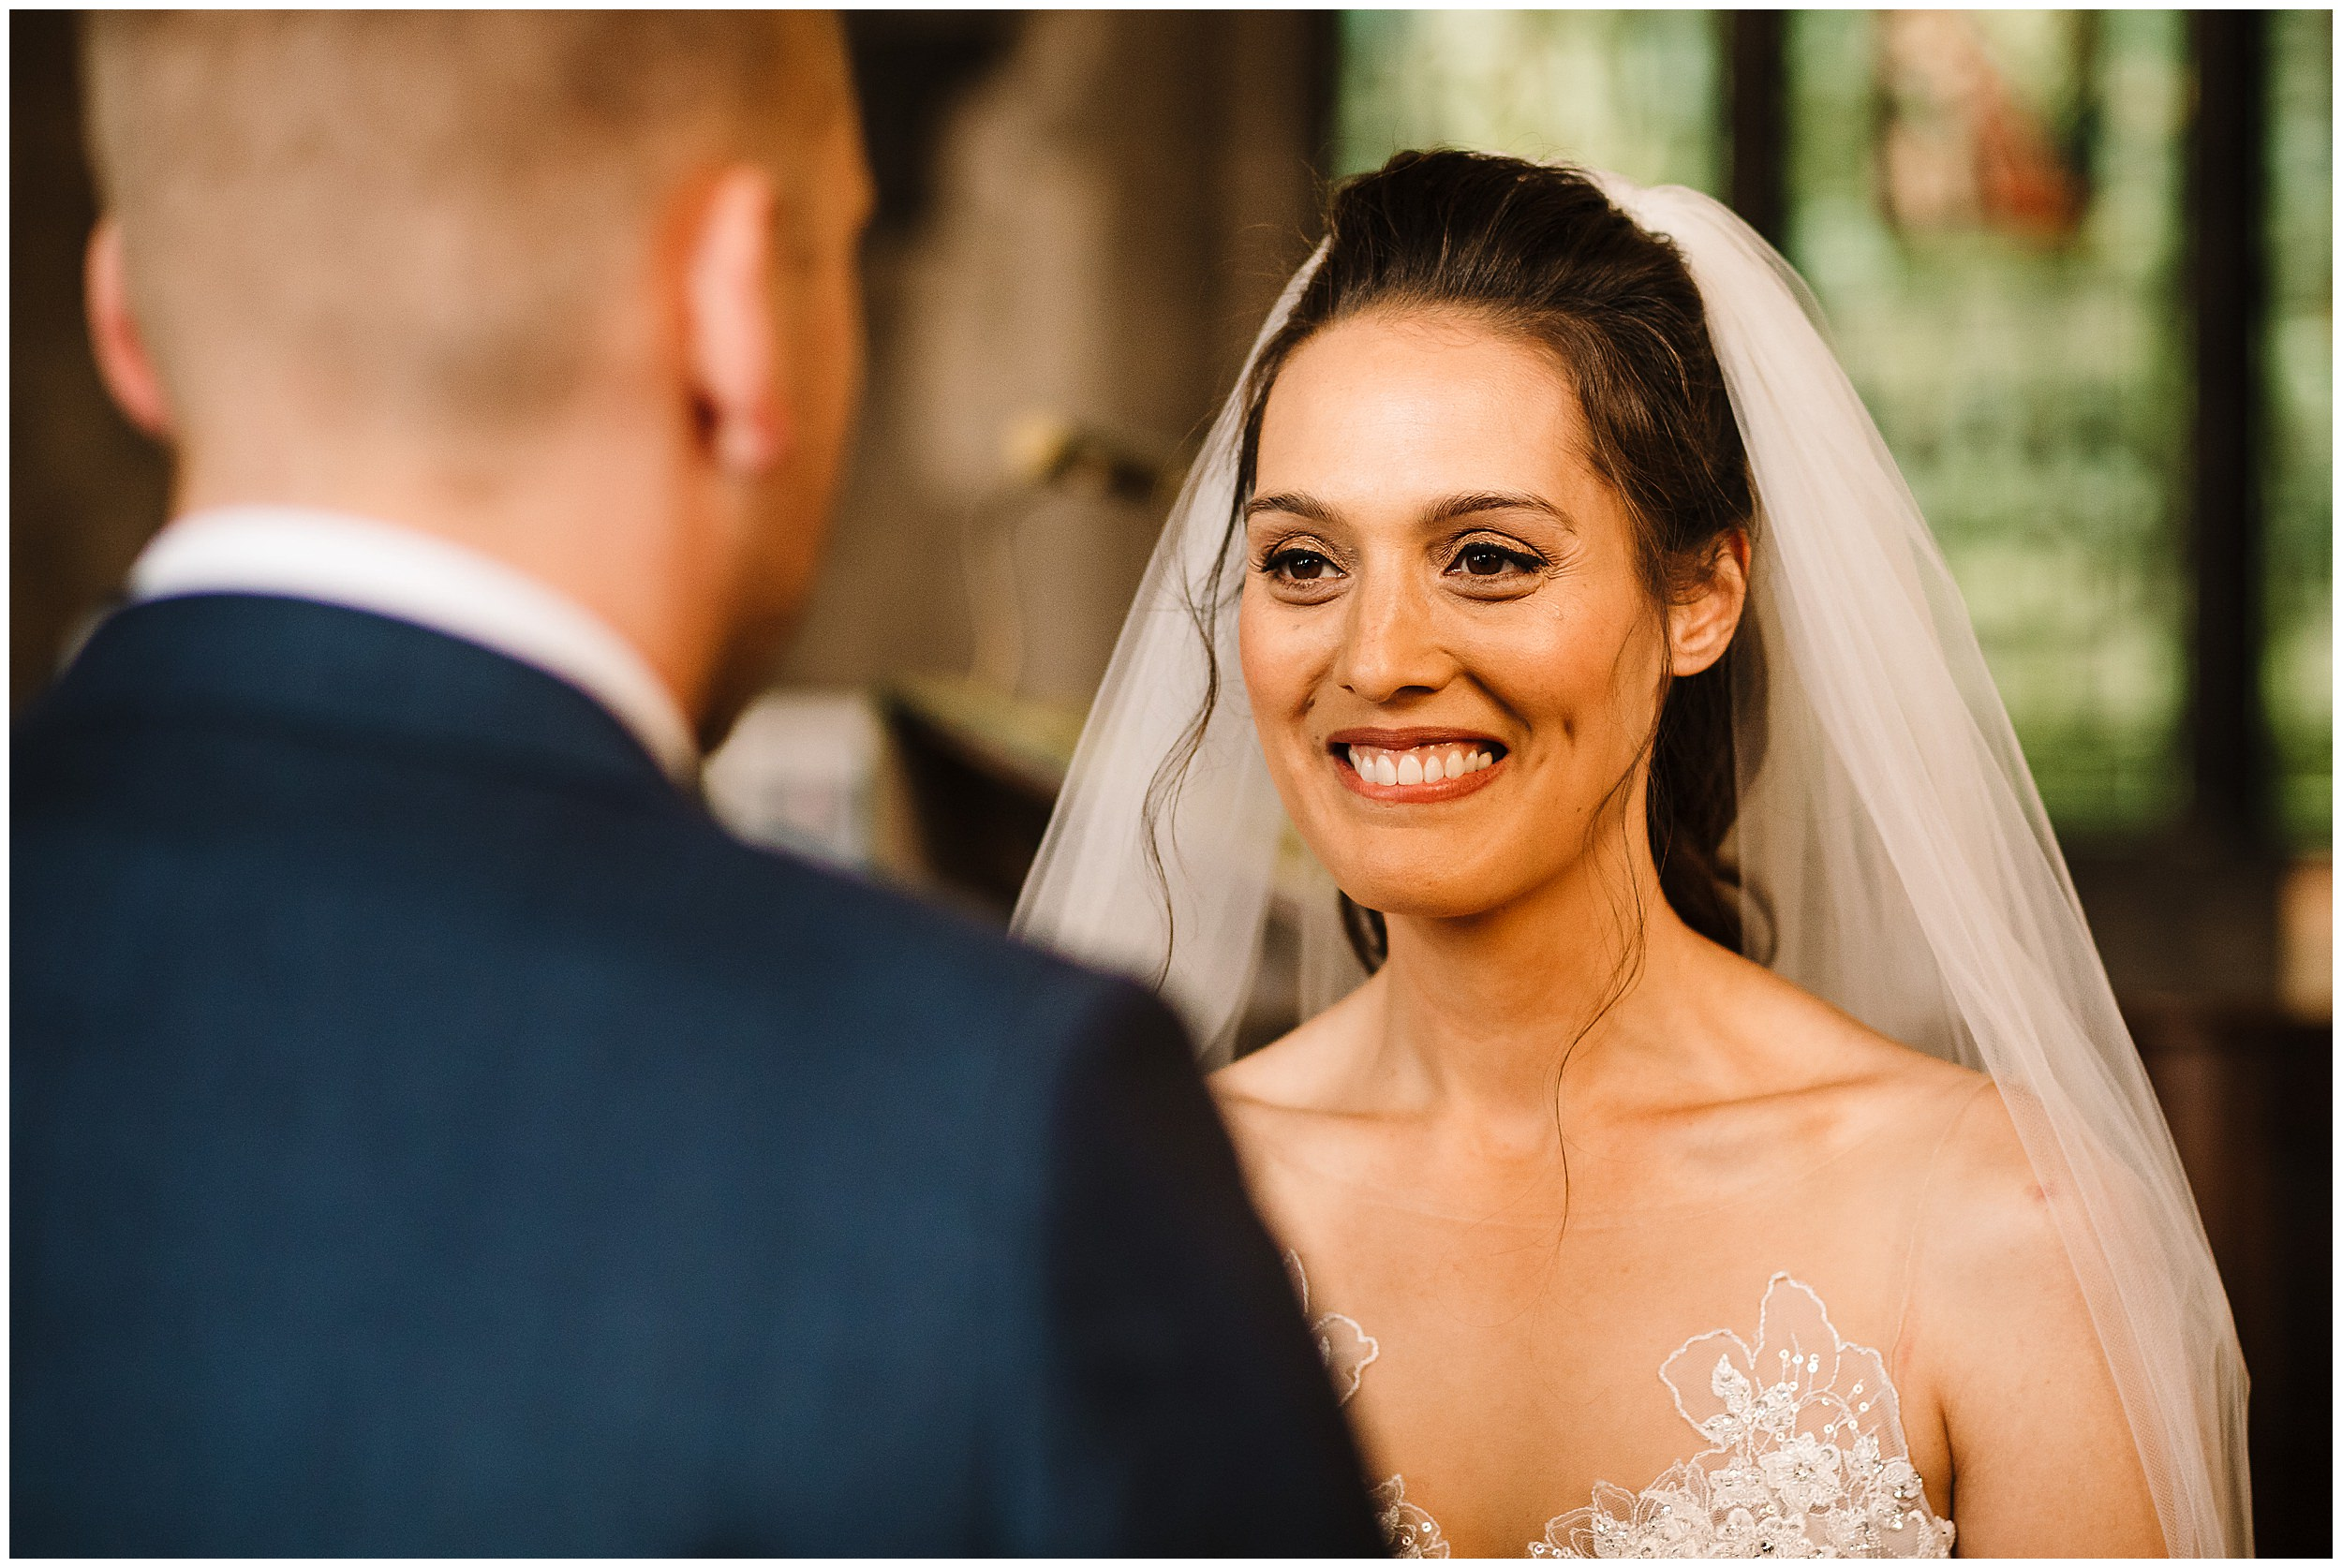 A bride biting her lip as she looks at the groom while they say their vows